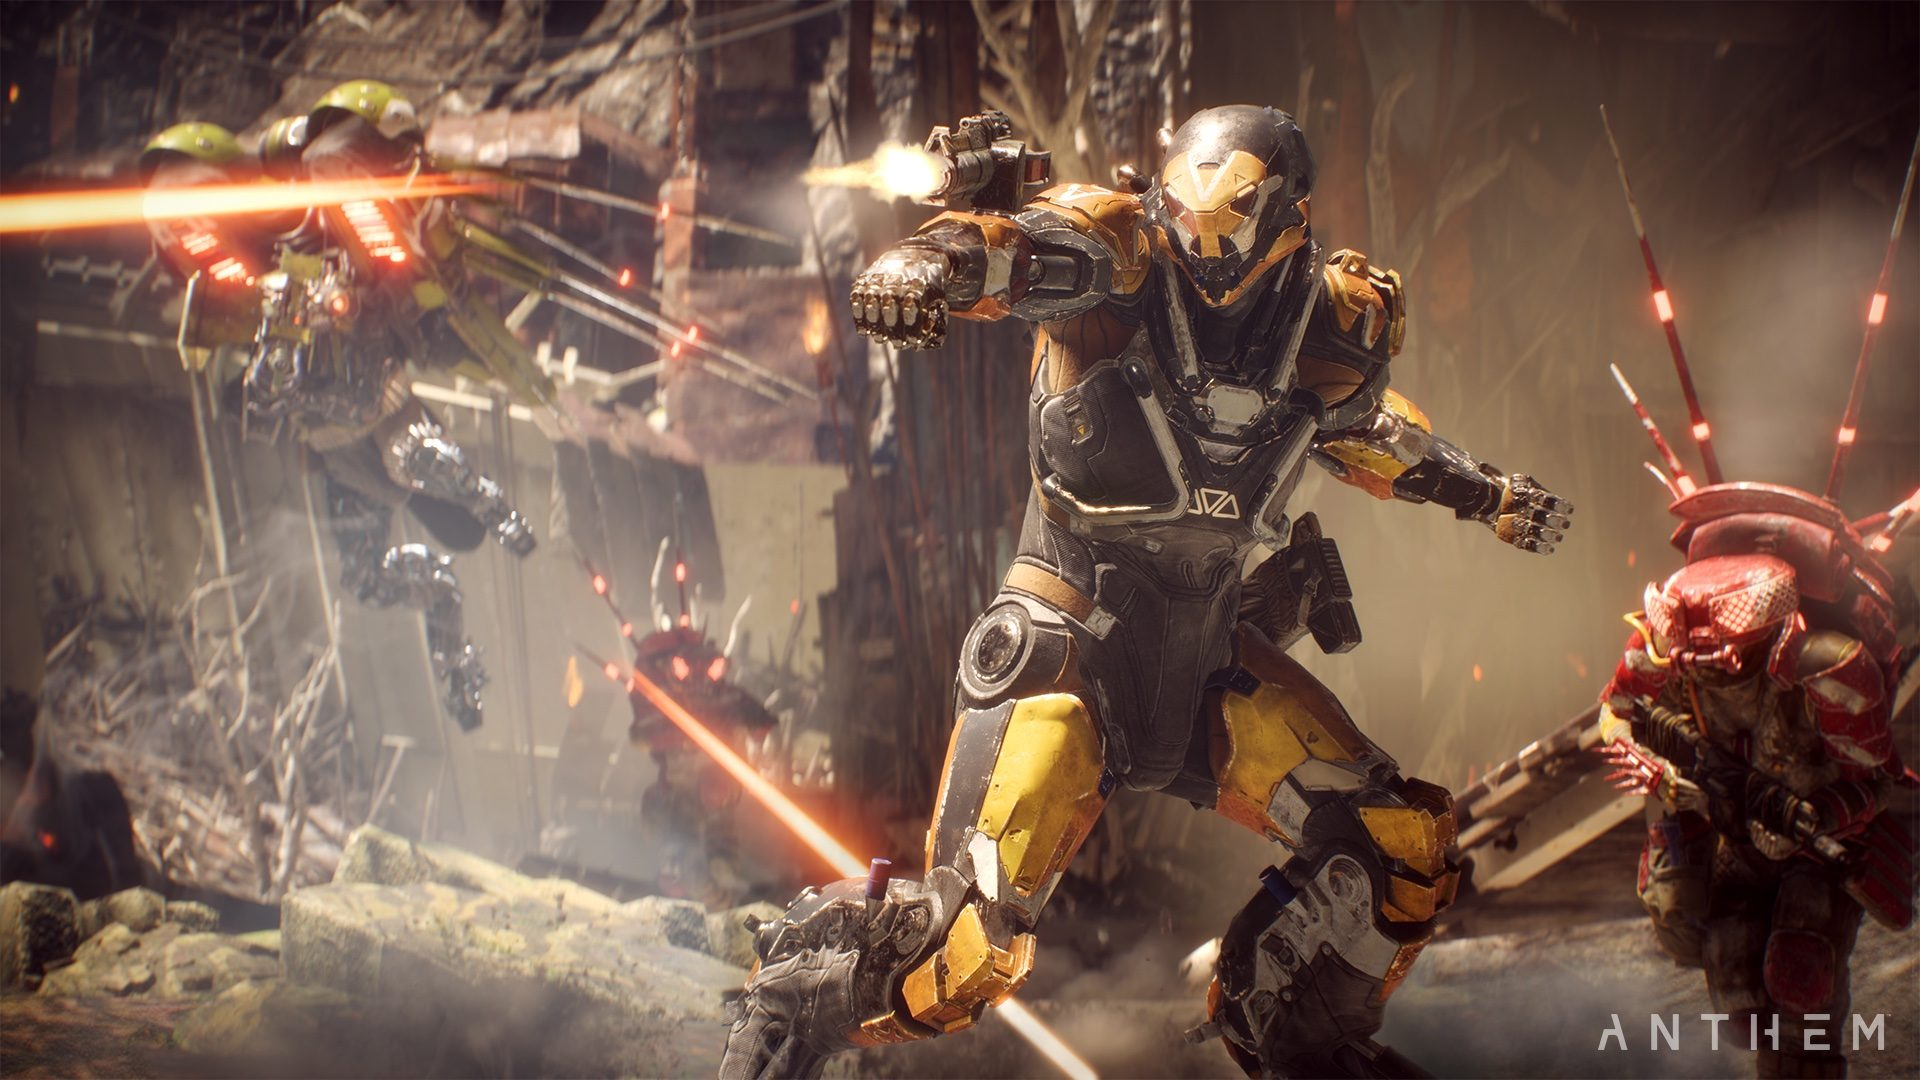 Anthem review - Javelins